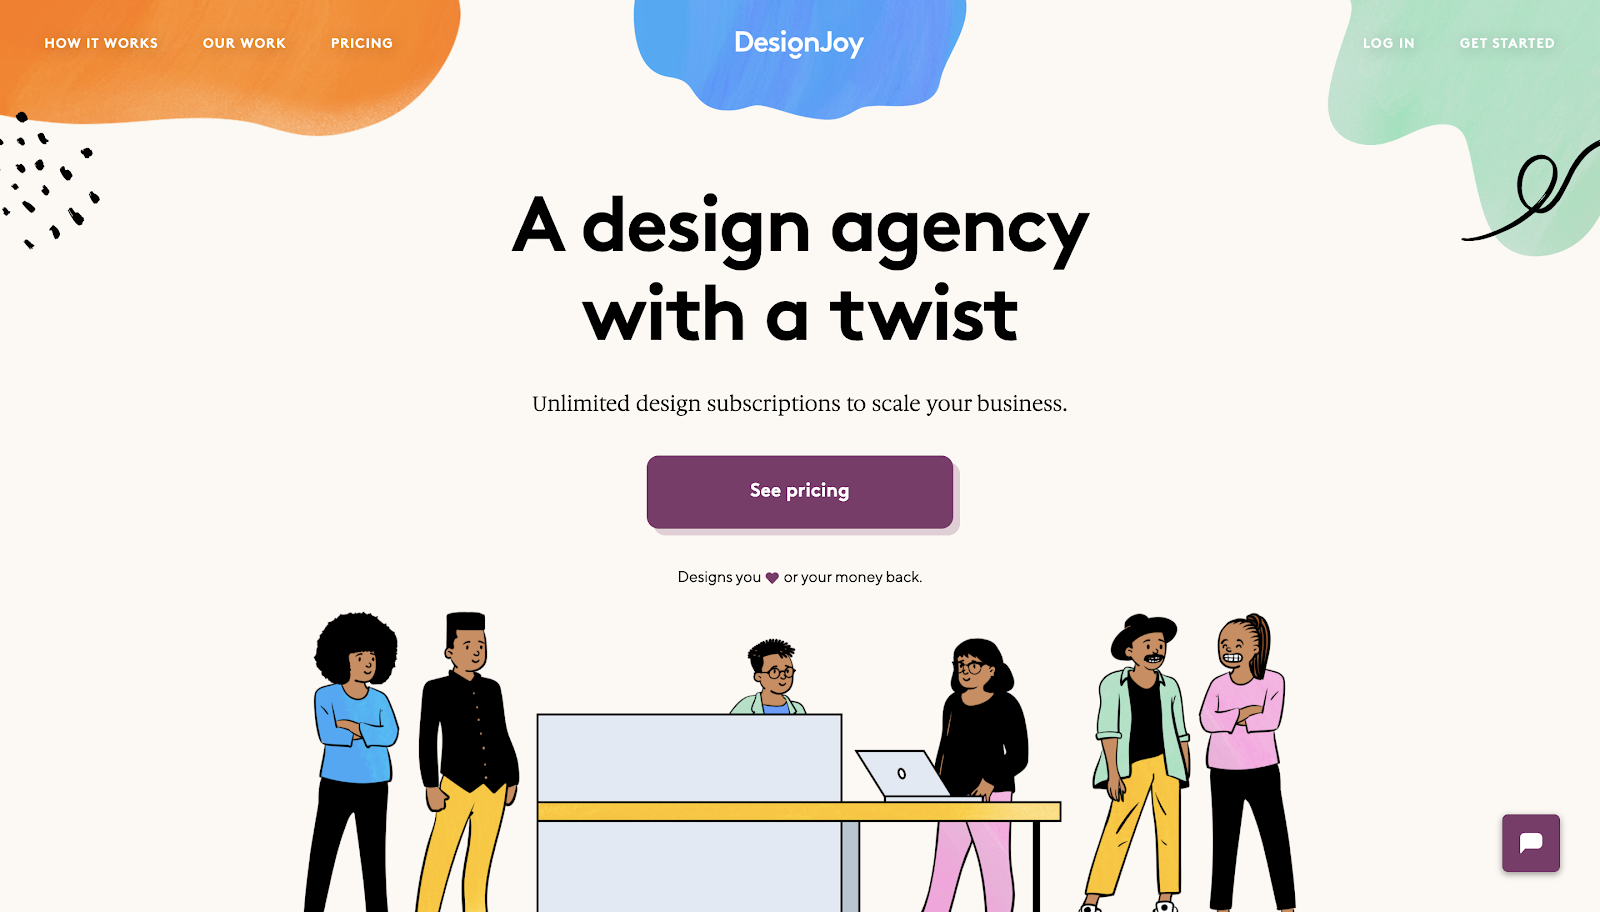 DesignJoy's website